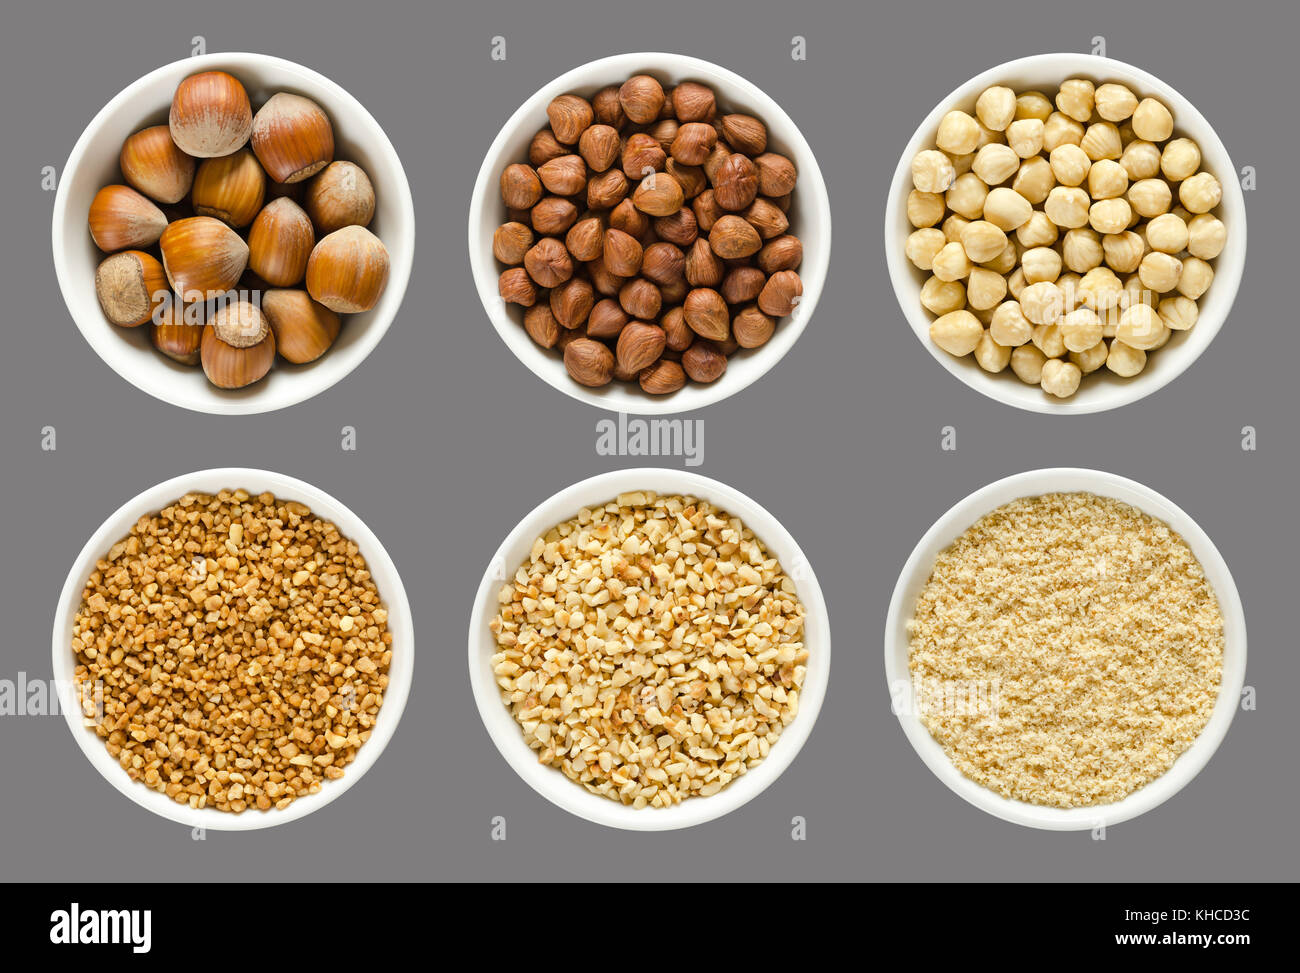 Hazelnuts in white bowls over gray. Whole, shelled, blanched, chopped and grounded nuts with hazelnut brittle. Photo. - Stock Image